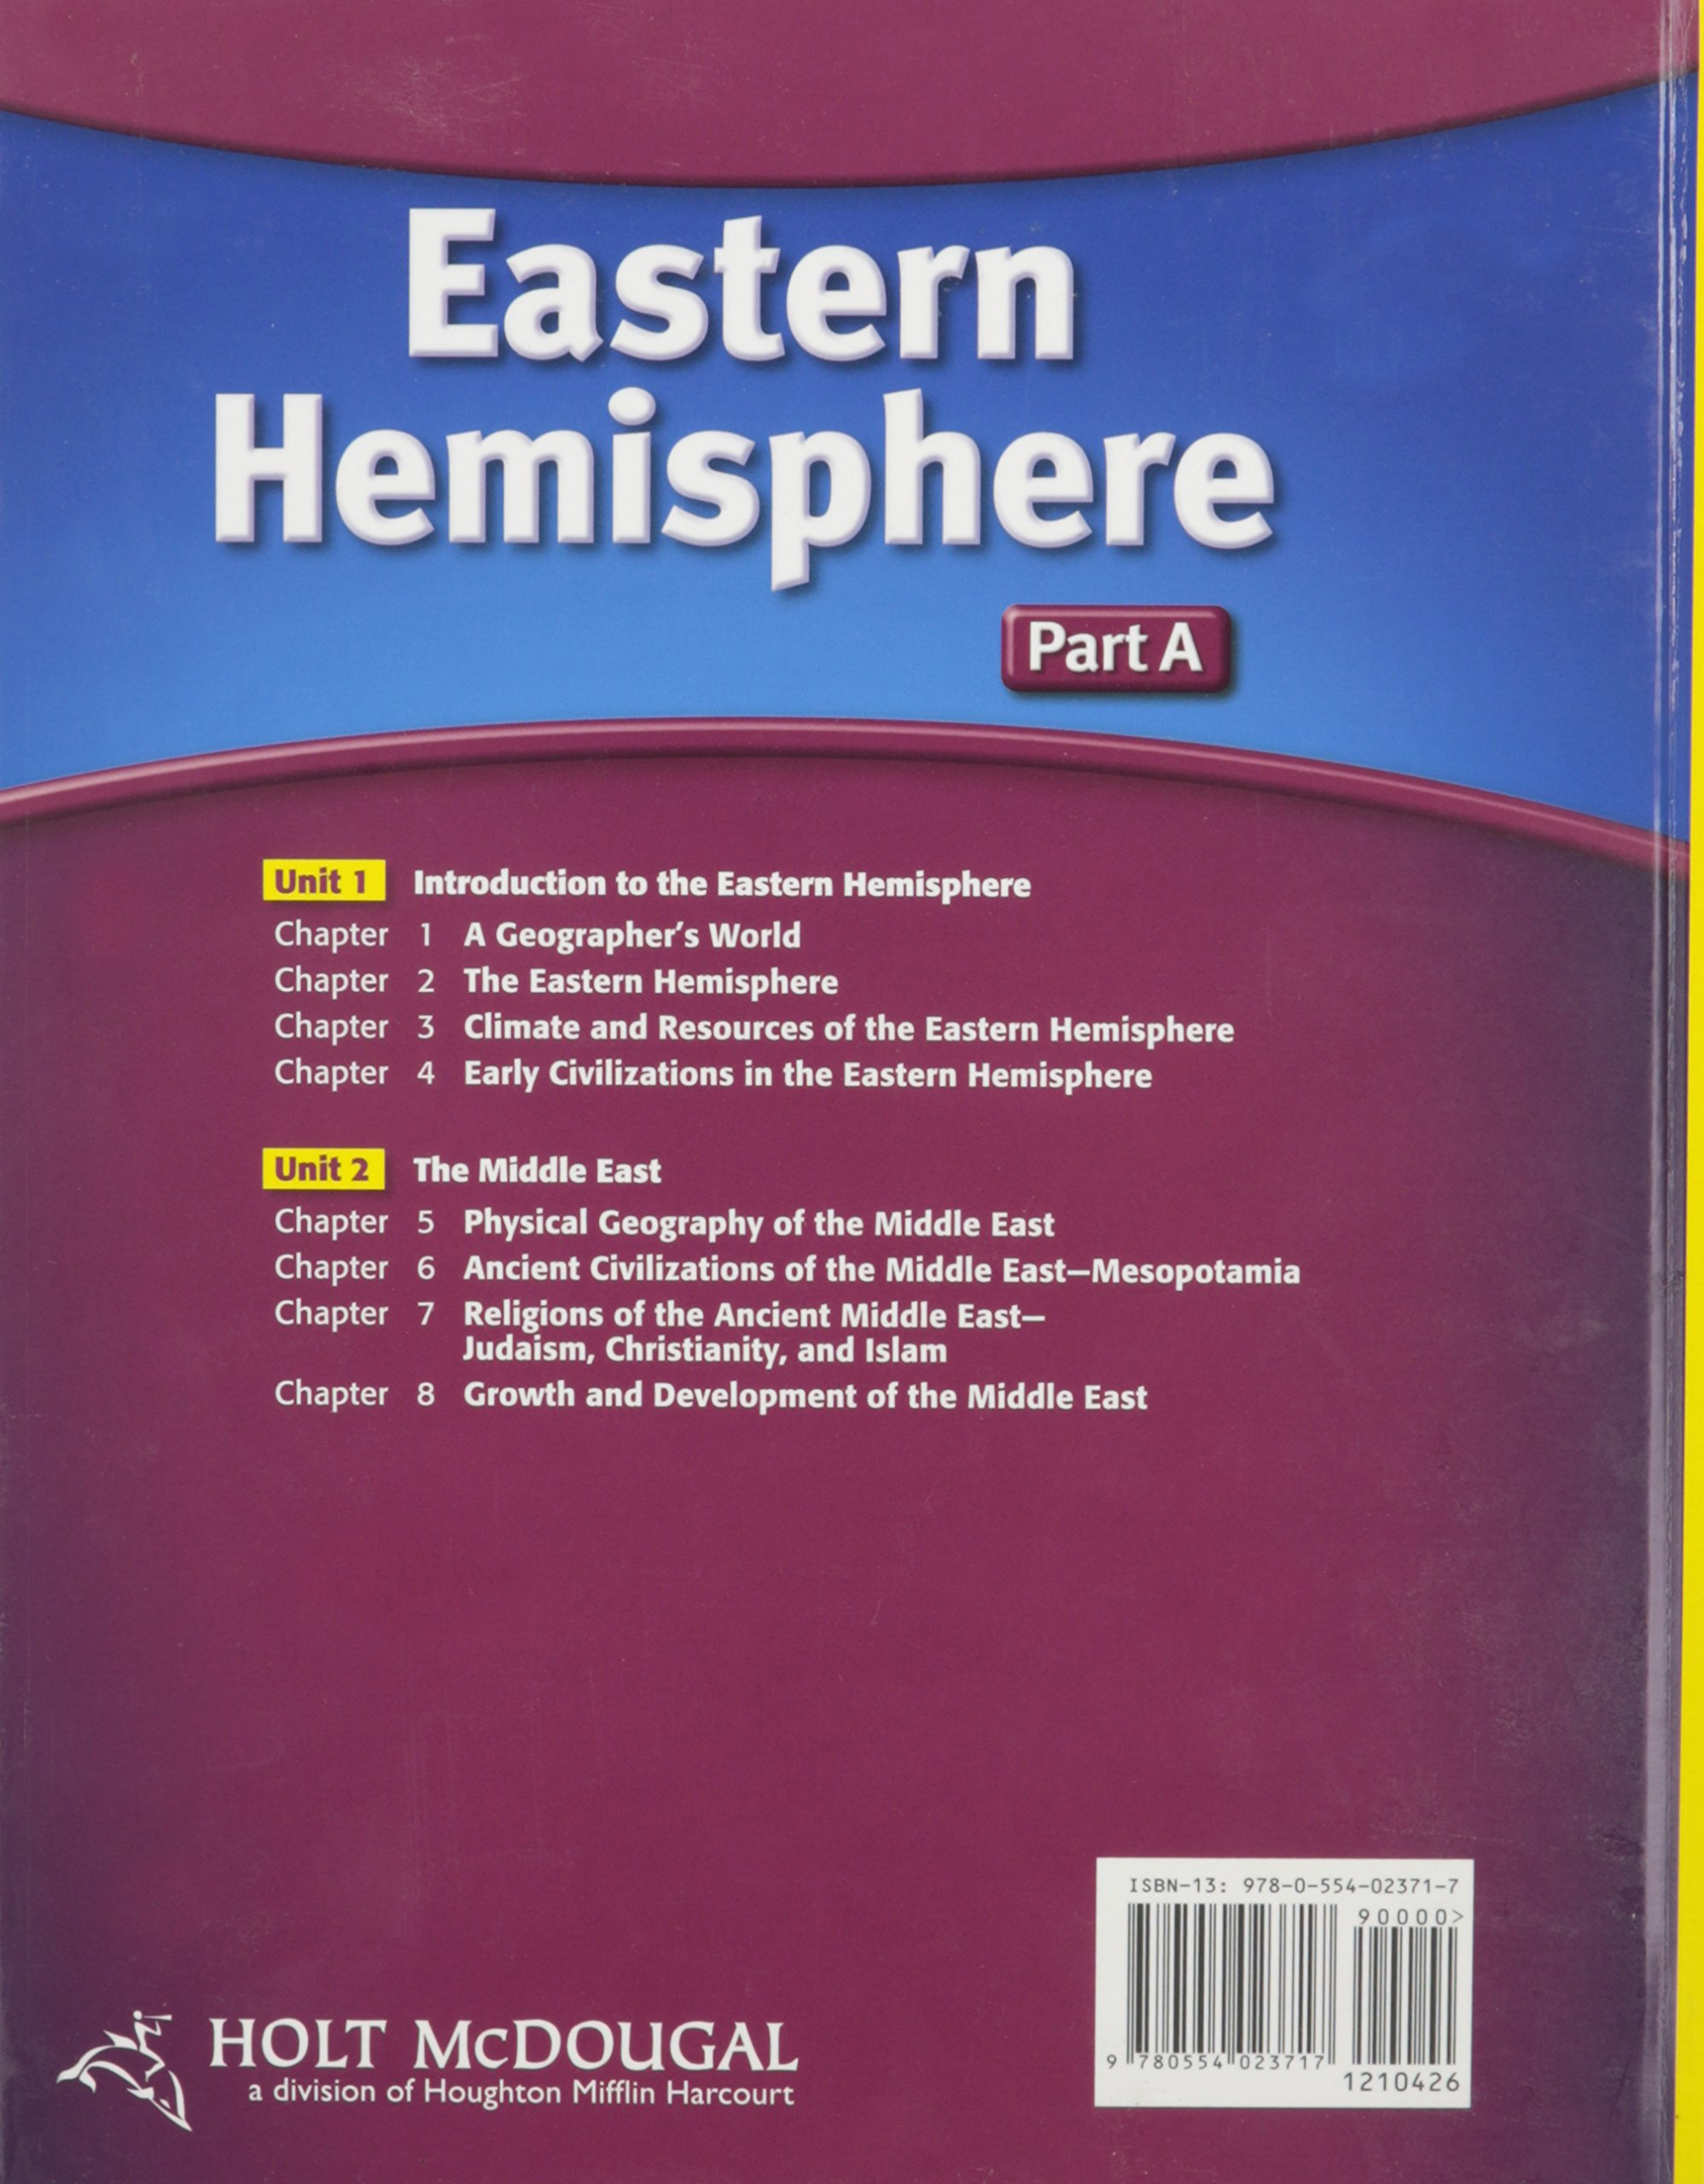 Amazon.com: Holt McDougal Eastern Hemisphere 2009: Student Edition Part A:  Geography and History 2009 (9780554023717): RINEHART AND WINSTON HOLT: Books